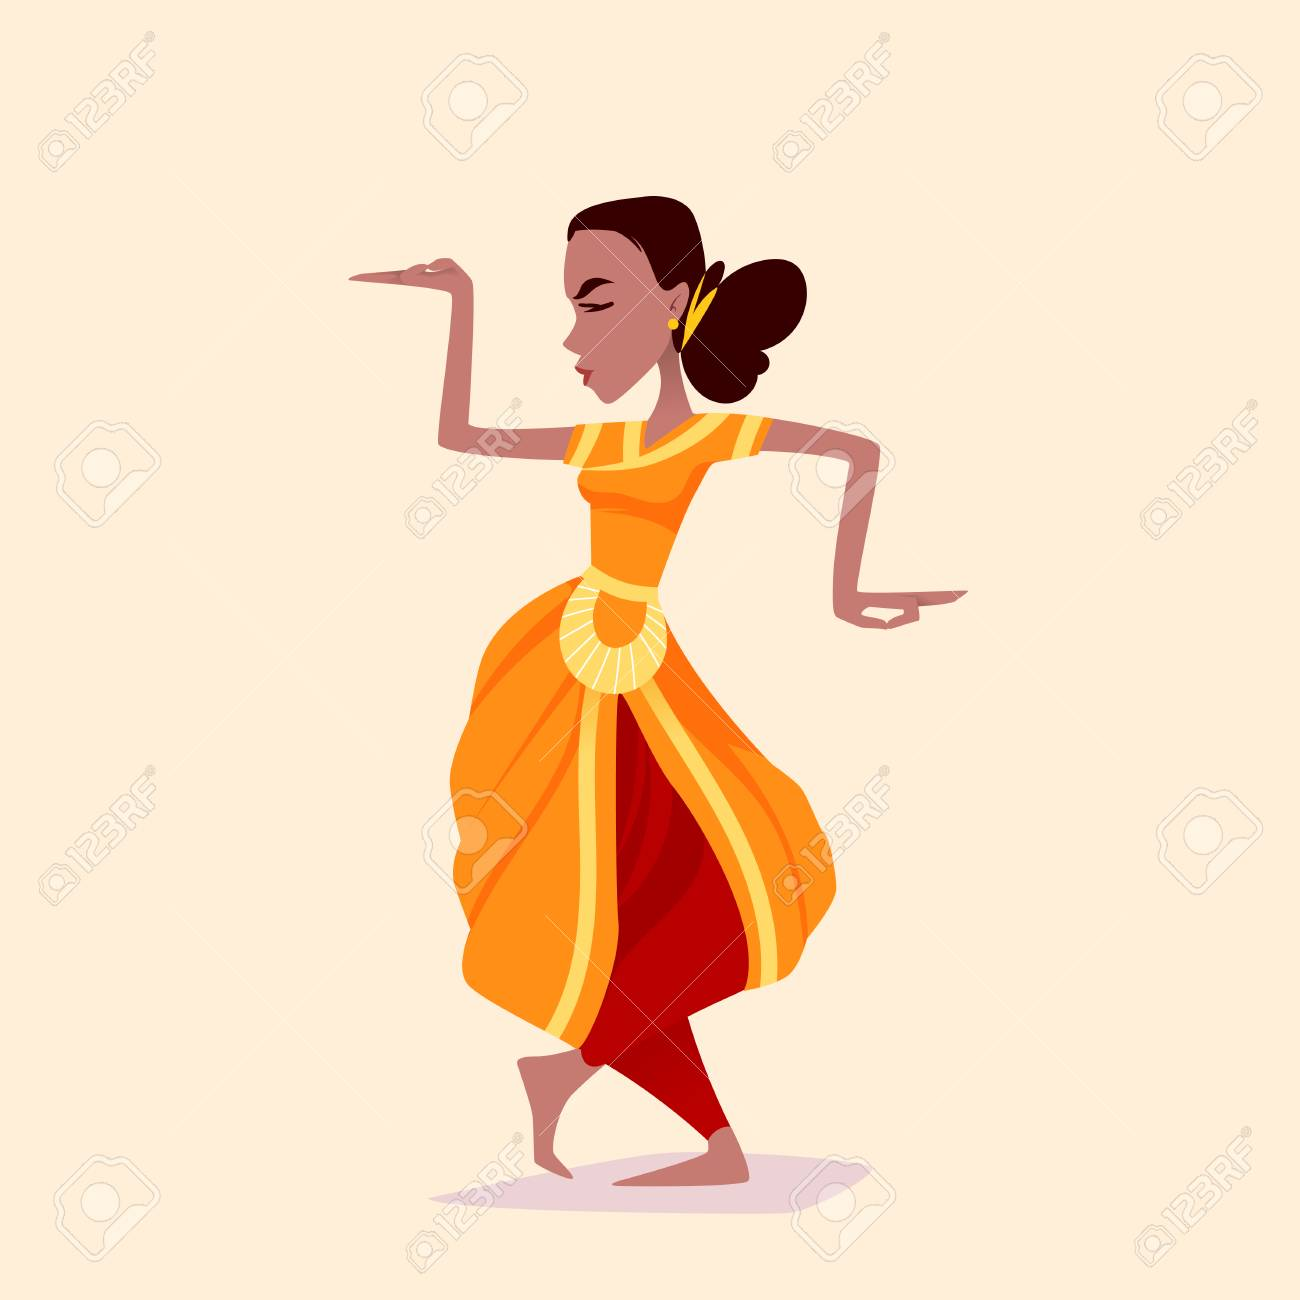 Indian Girl Dancer In The Posture Of Indian Dance Vector Cartoon Royalty Free Cliparts Vectors And Stock Illustration Image 88179272